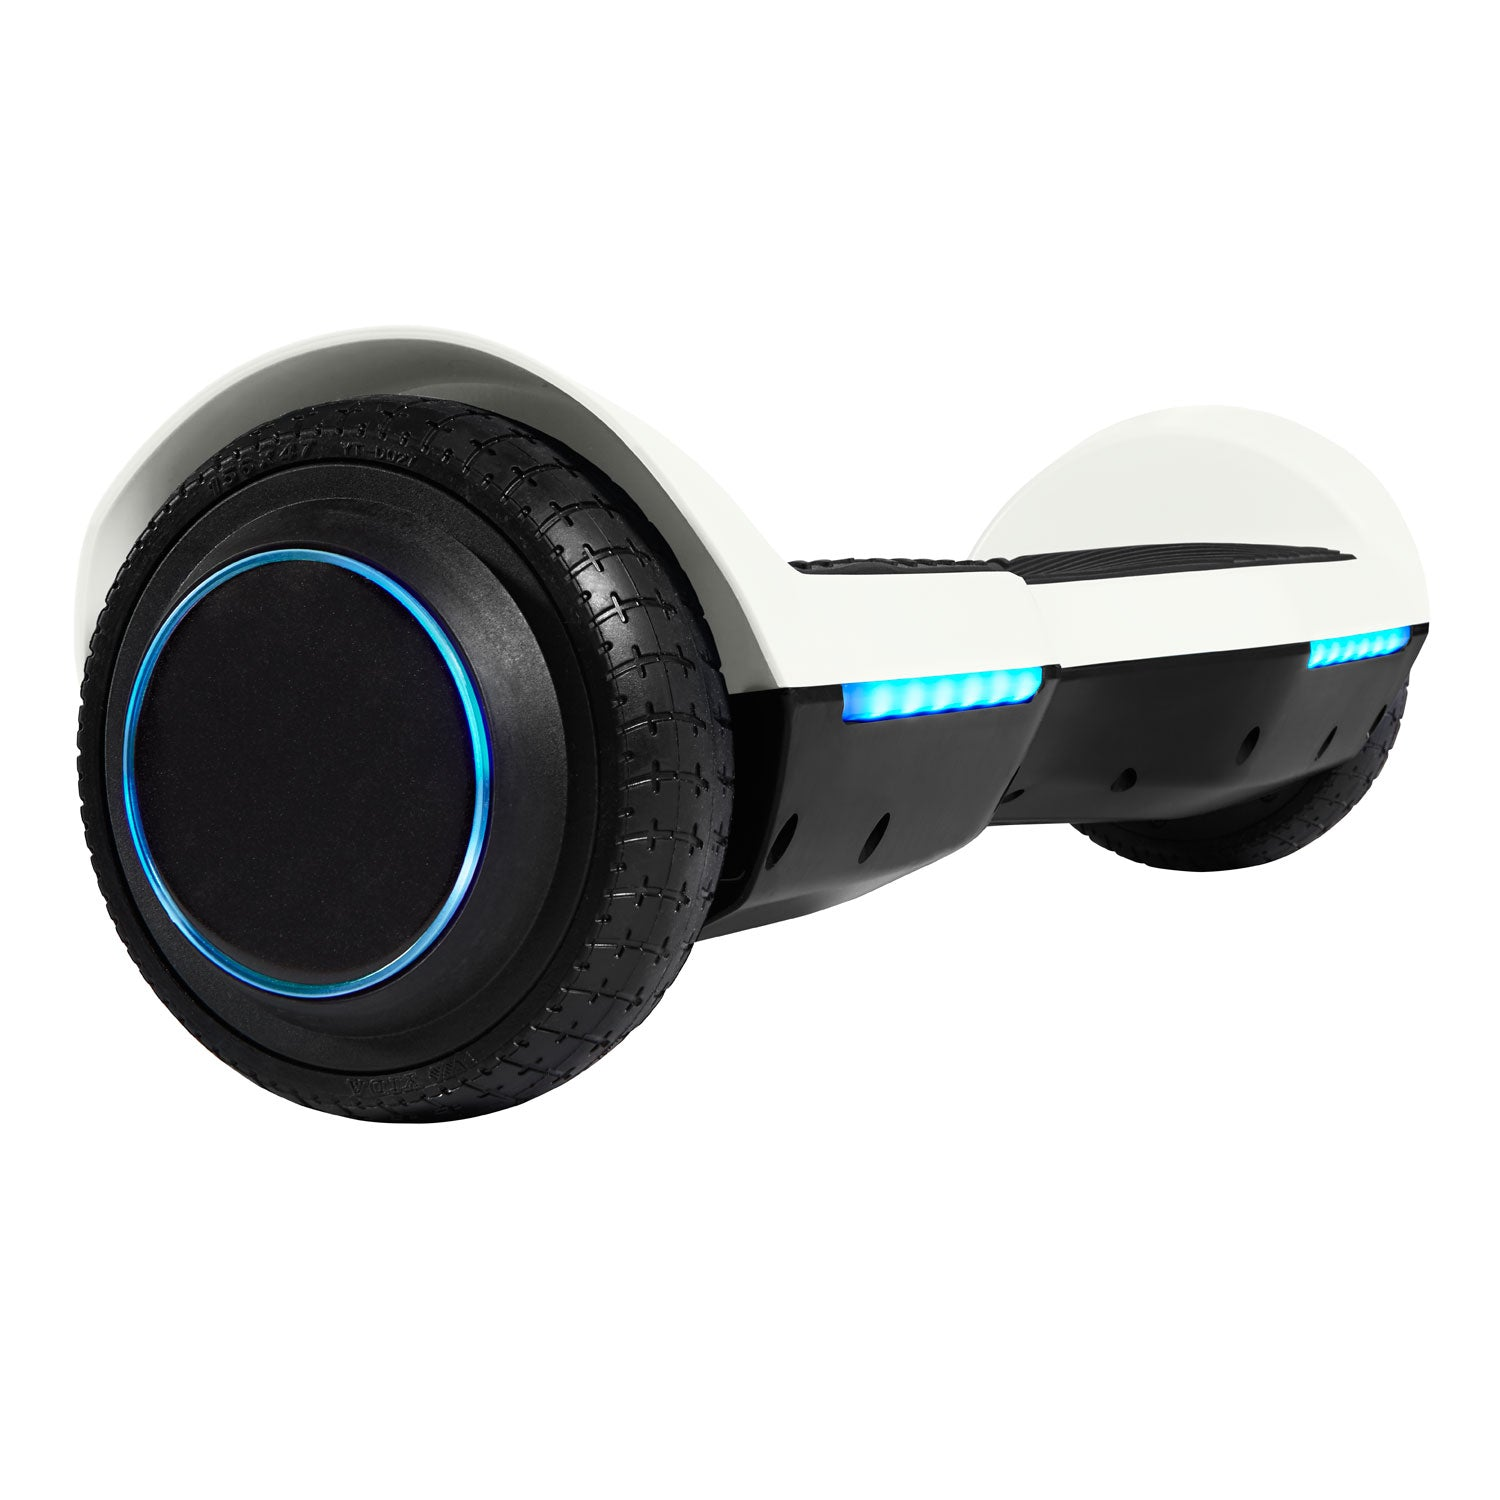 white Main image srx bluetooth hoverboard